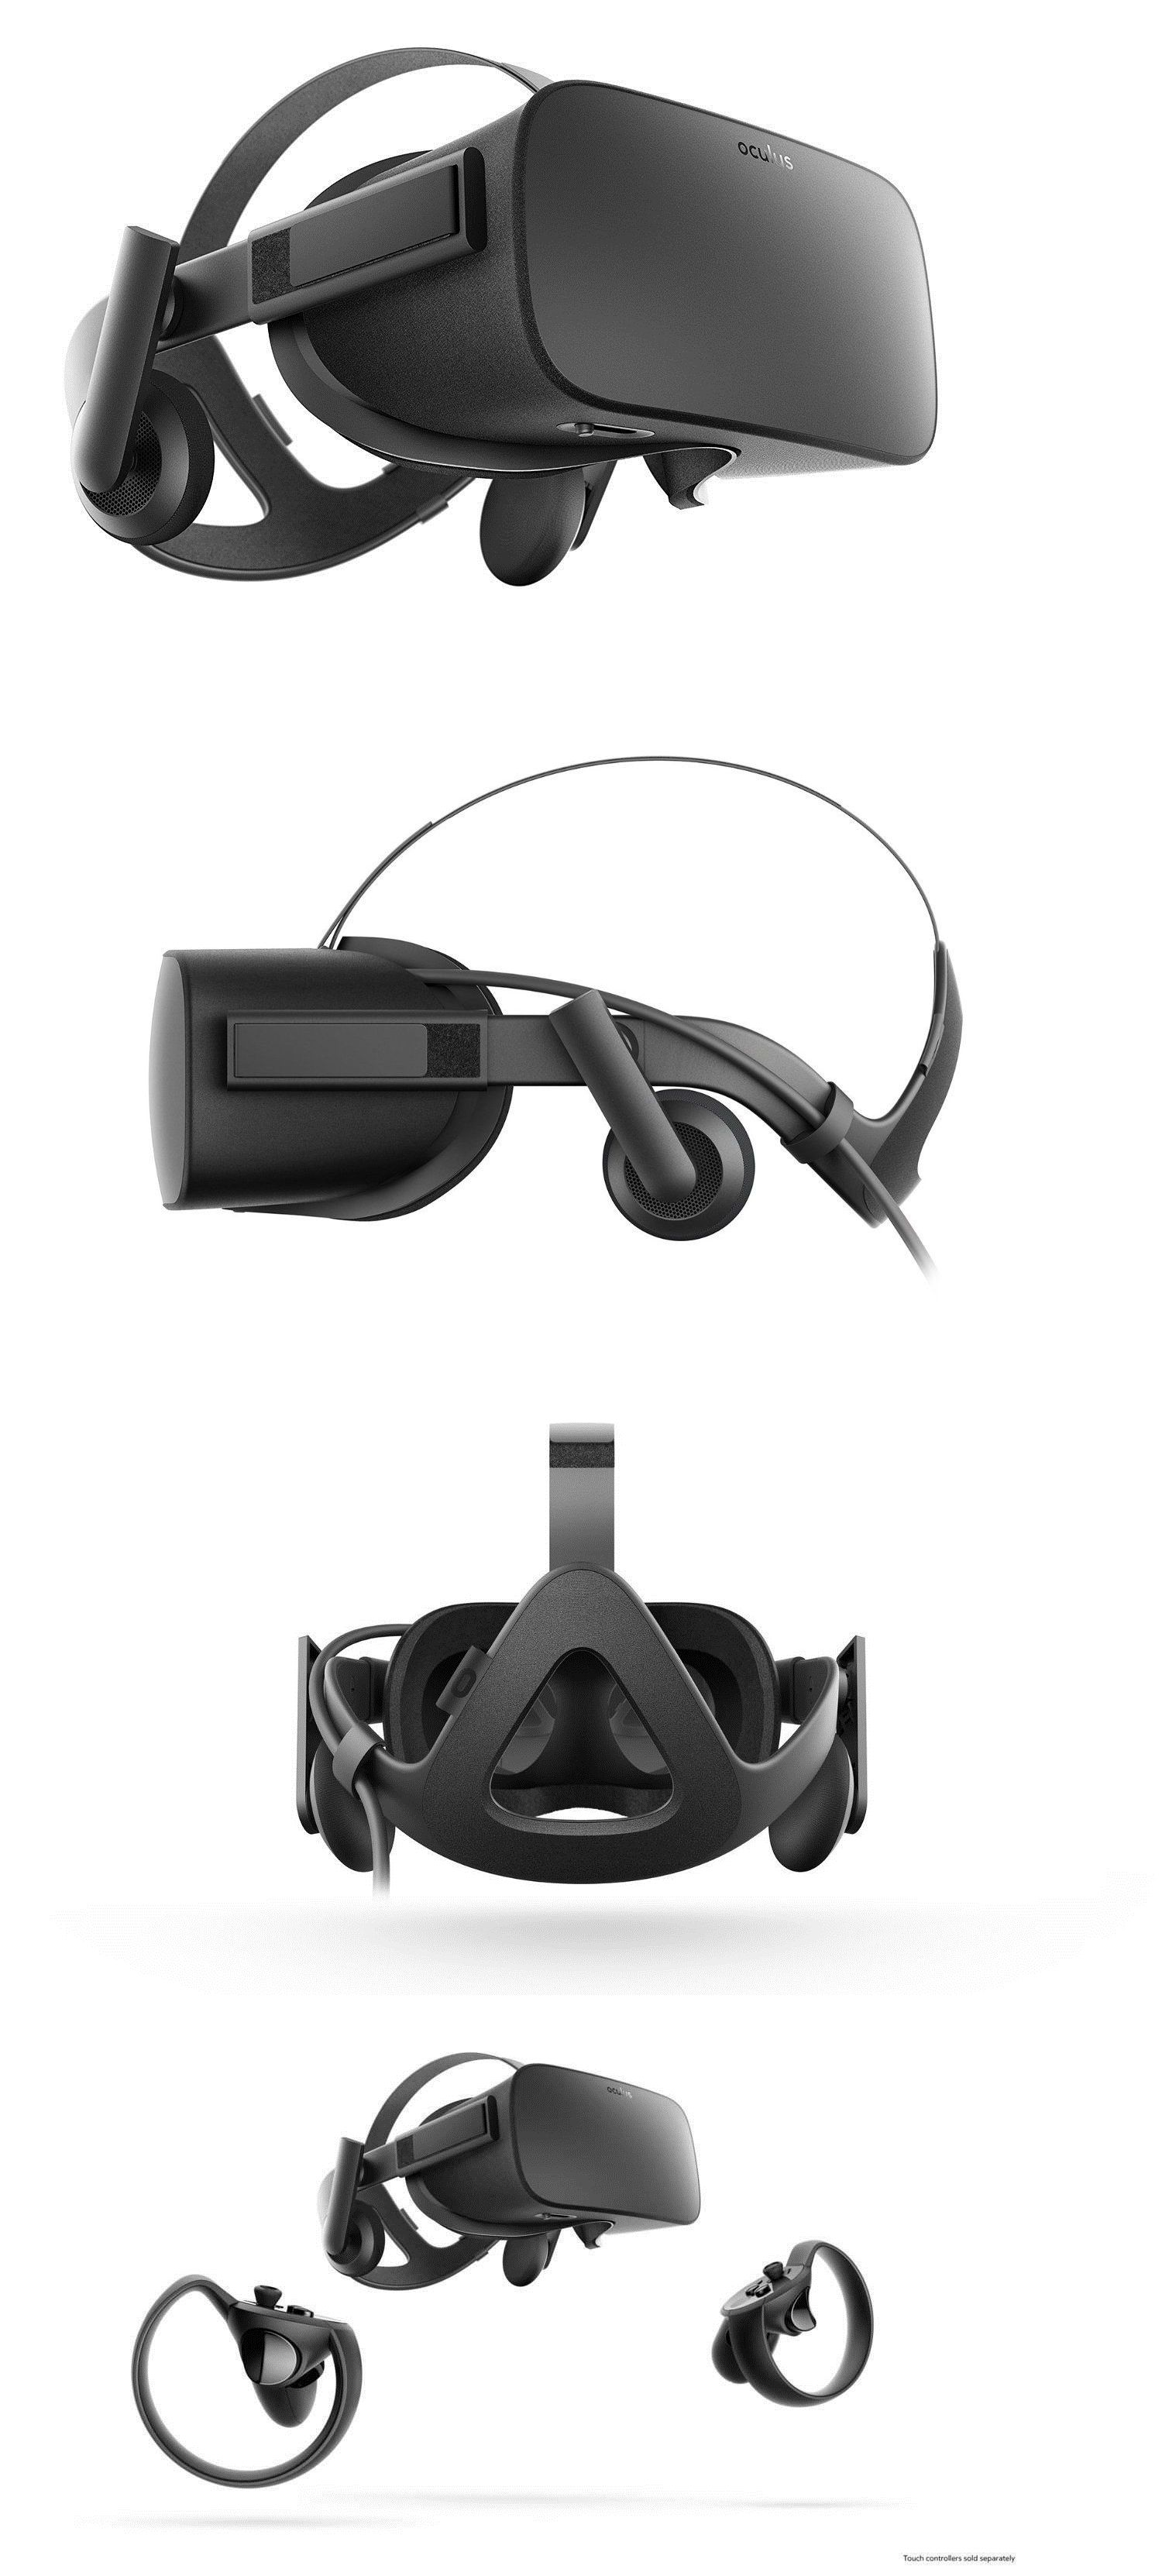 06449af9a8cb PC and Console VR Headsets  New! Oculus Rift Virtual Reality Vr Headset For  Windows Gaming Pc BUY IT NOW ONLY   635.98